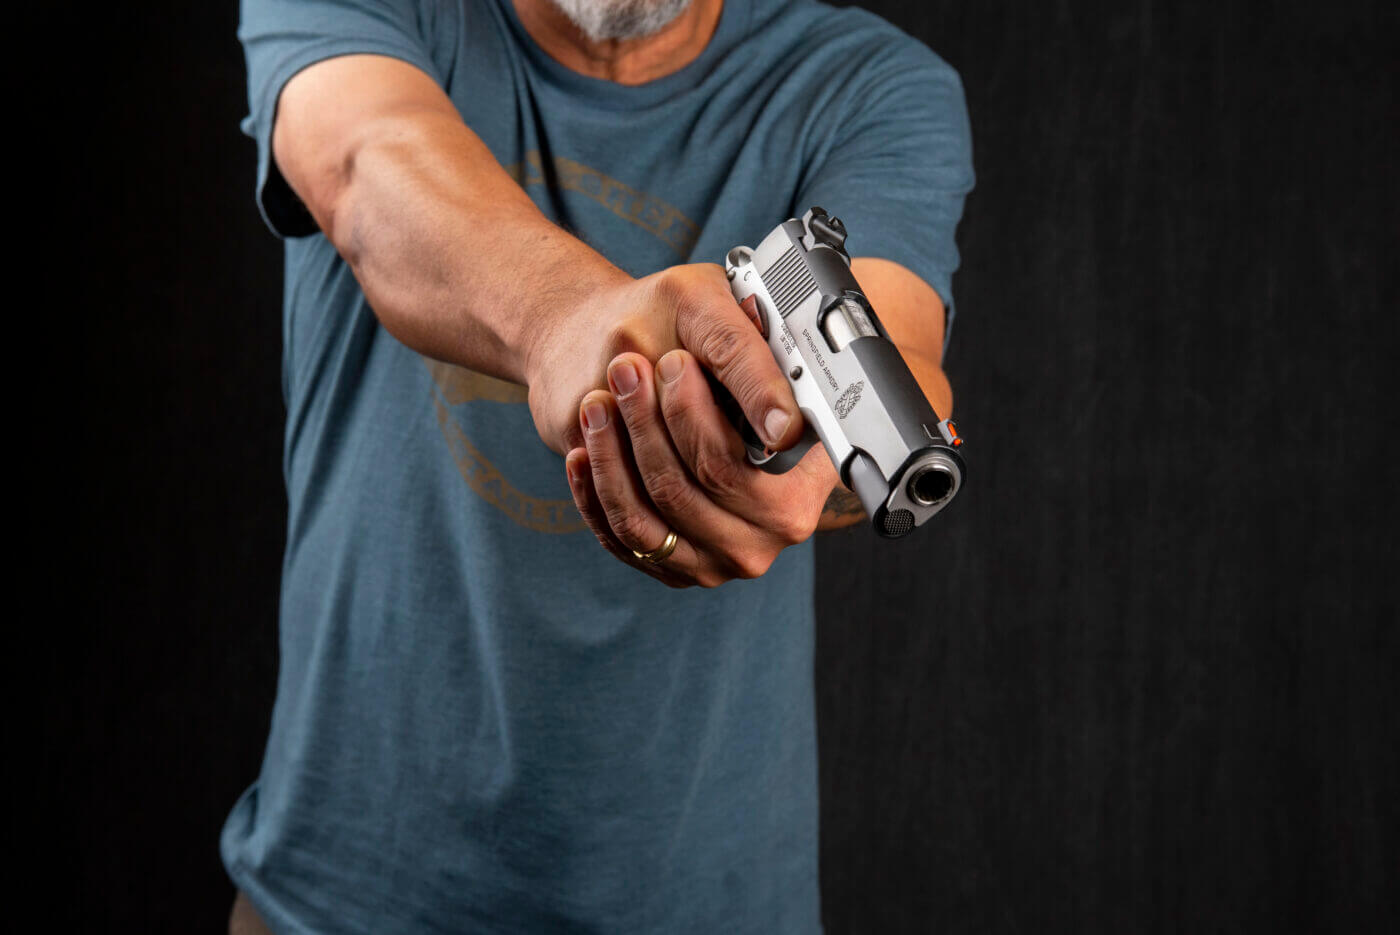 Man with Springfield 1911 pistol